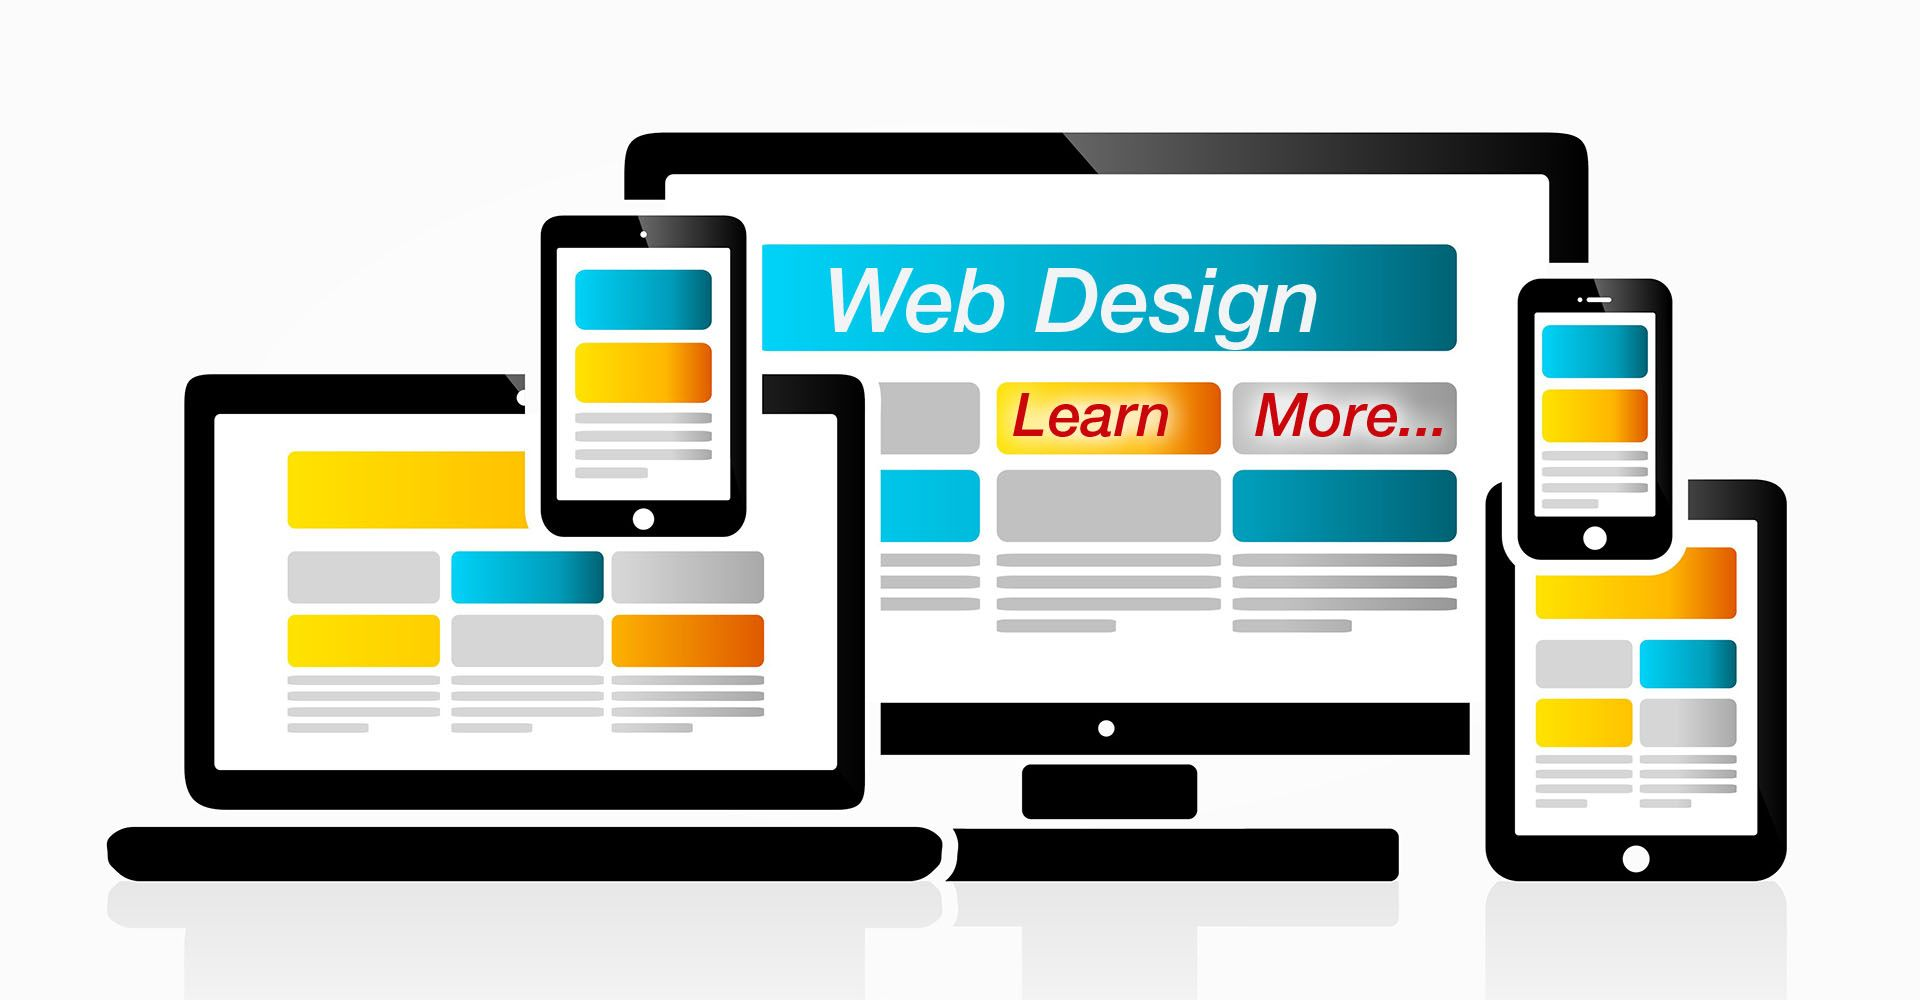 Eface Media Is One Of The Leading Companies On Long Island We Have A Team Of Designers And Programmers W Website Design Company Web Design Web Design Services